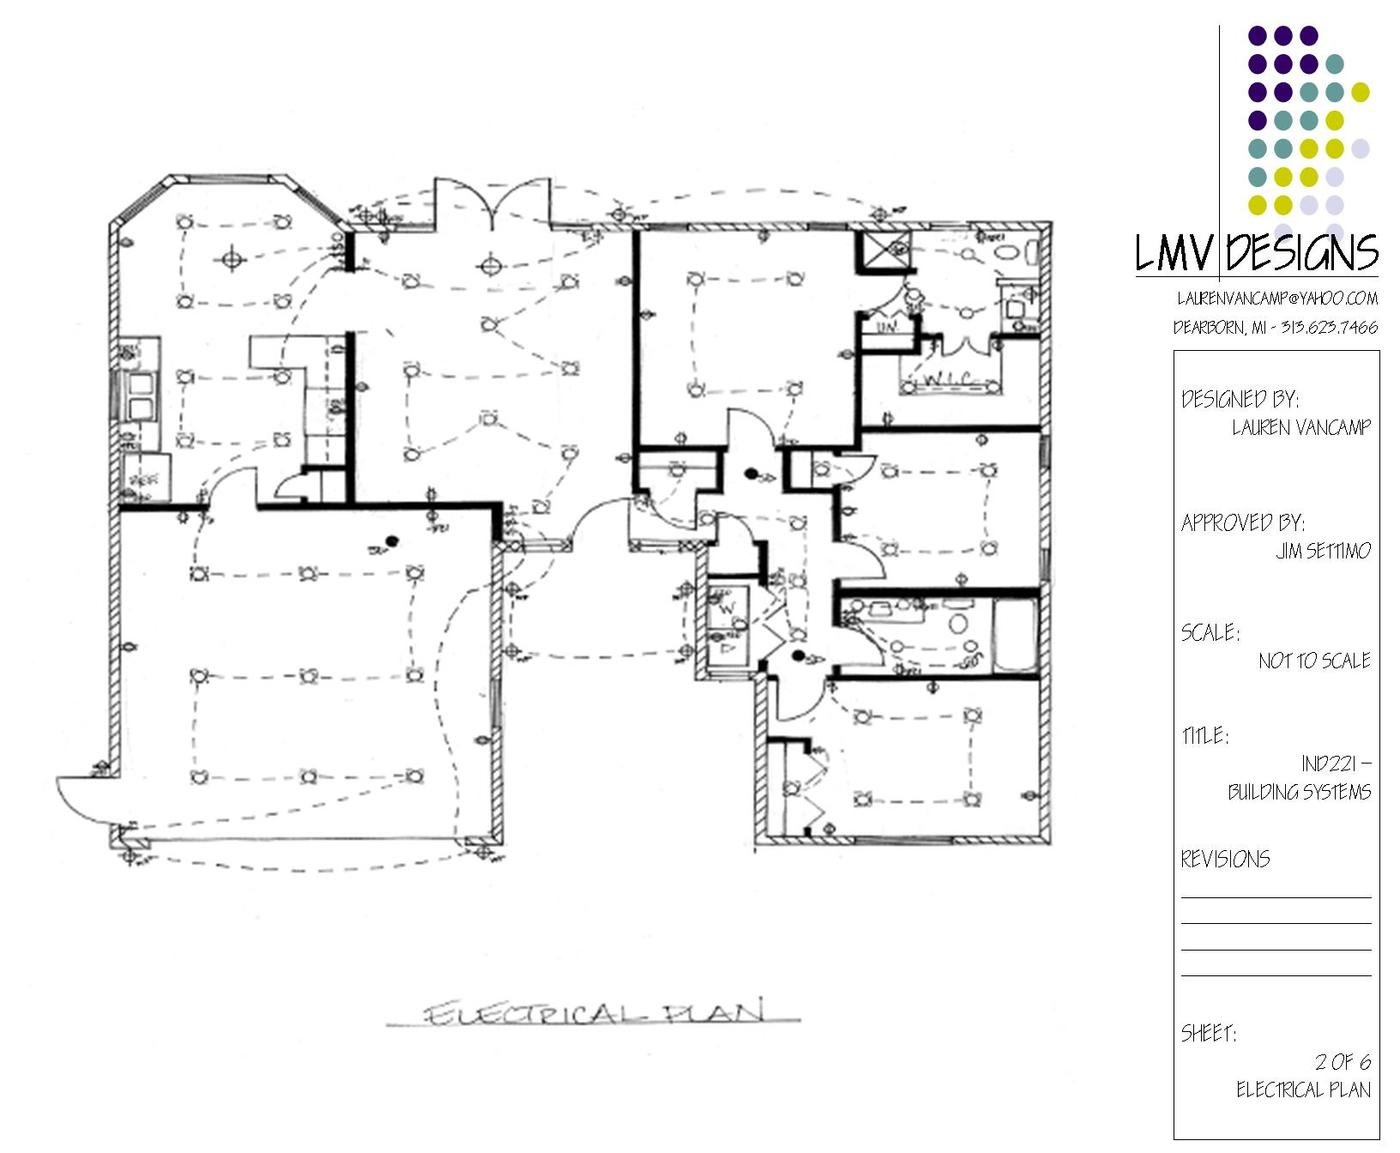 electrical plan new home a new home for some newlyweds by lauren vancamp at coroflot com  newlyweds by lauren vancamp at coroflot com